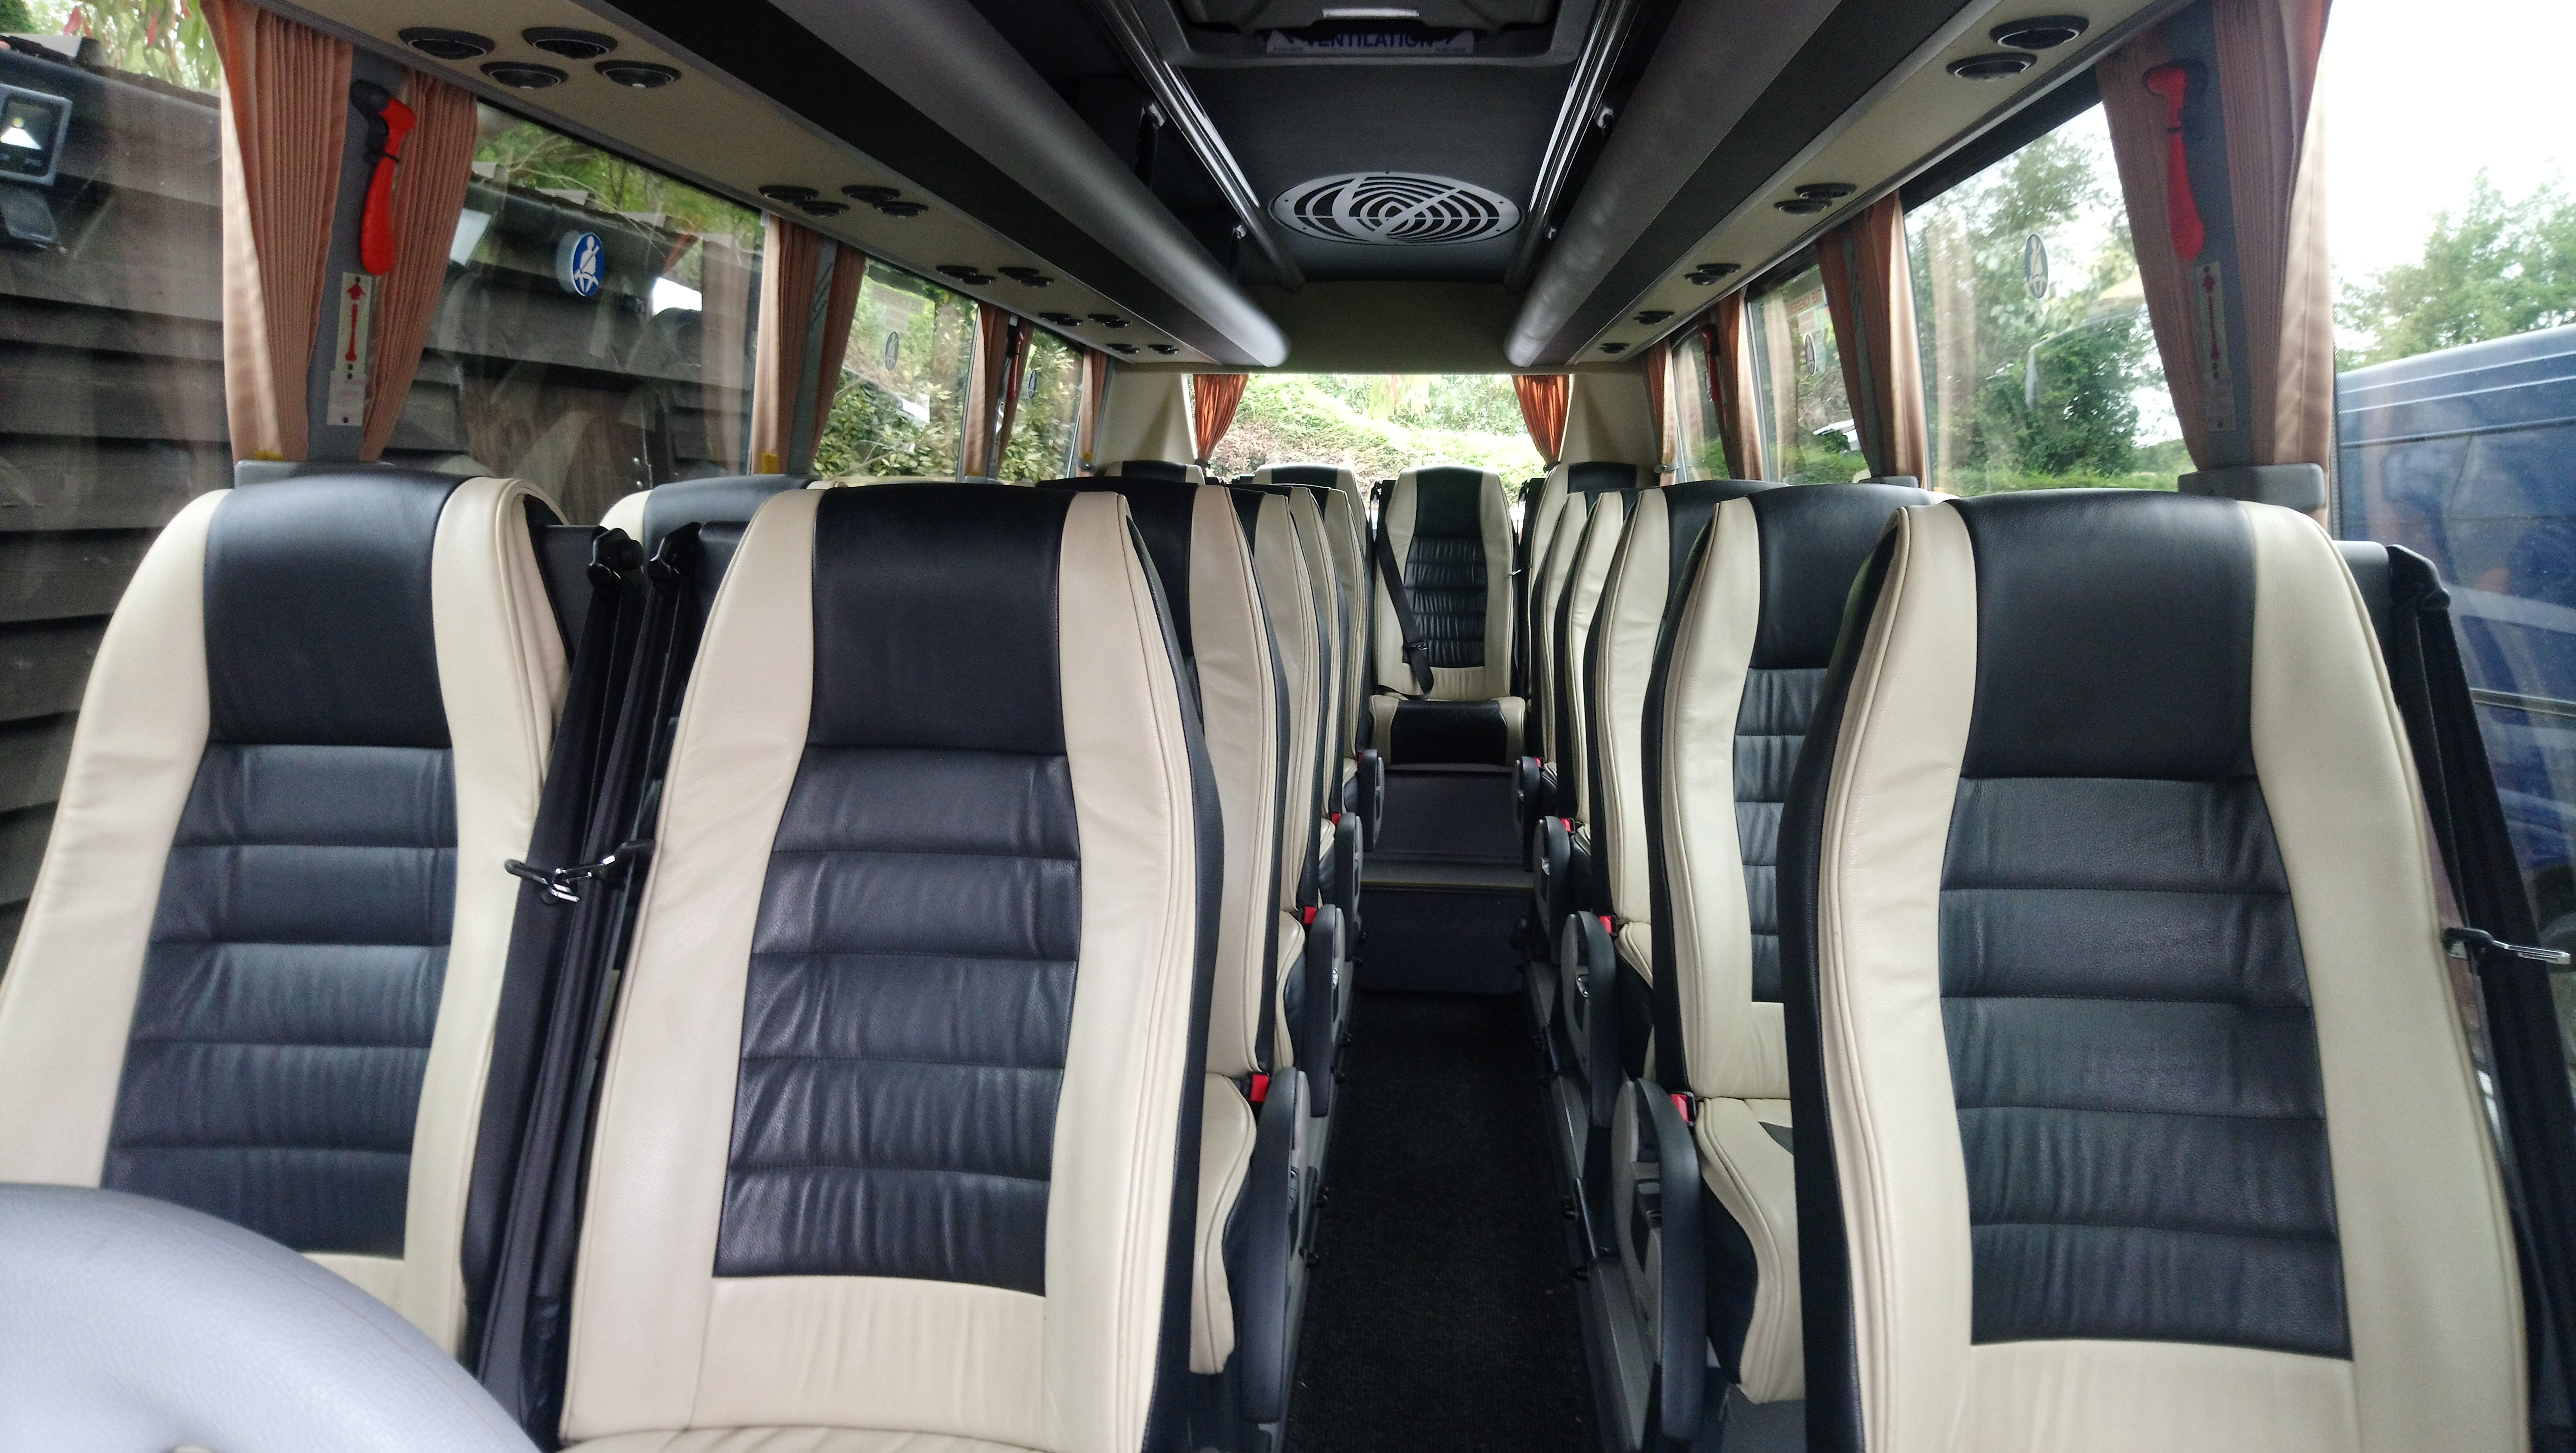 Holt's 19 seater coach with leather seats